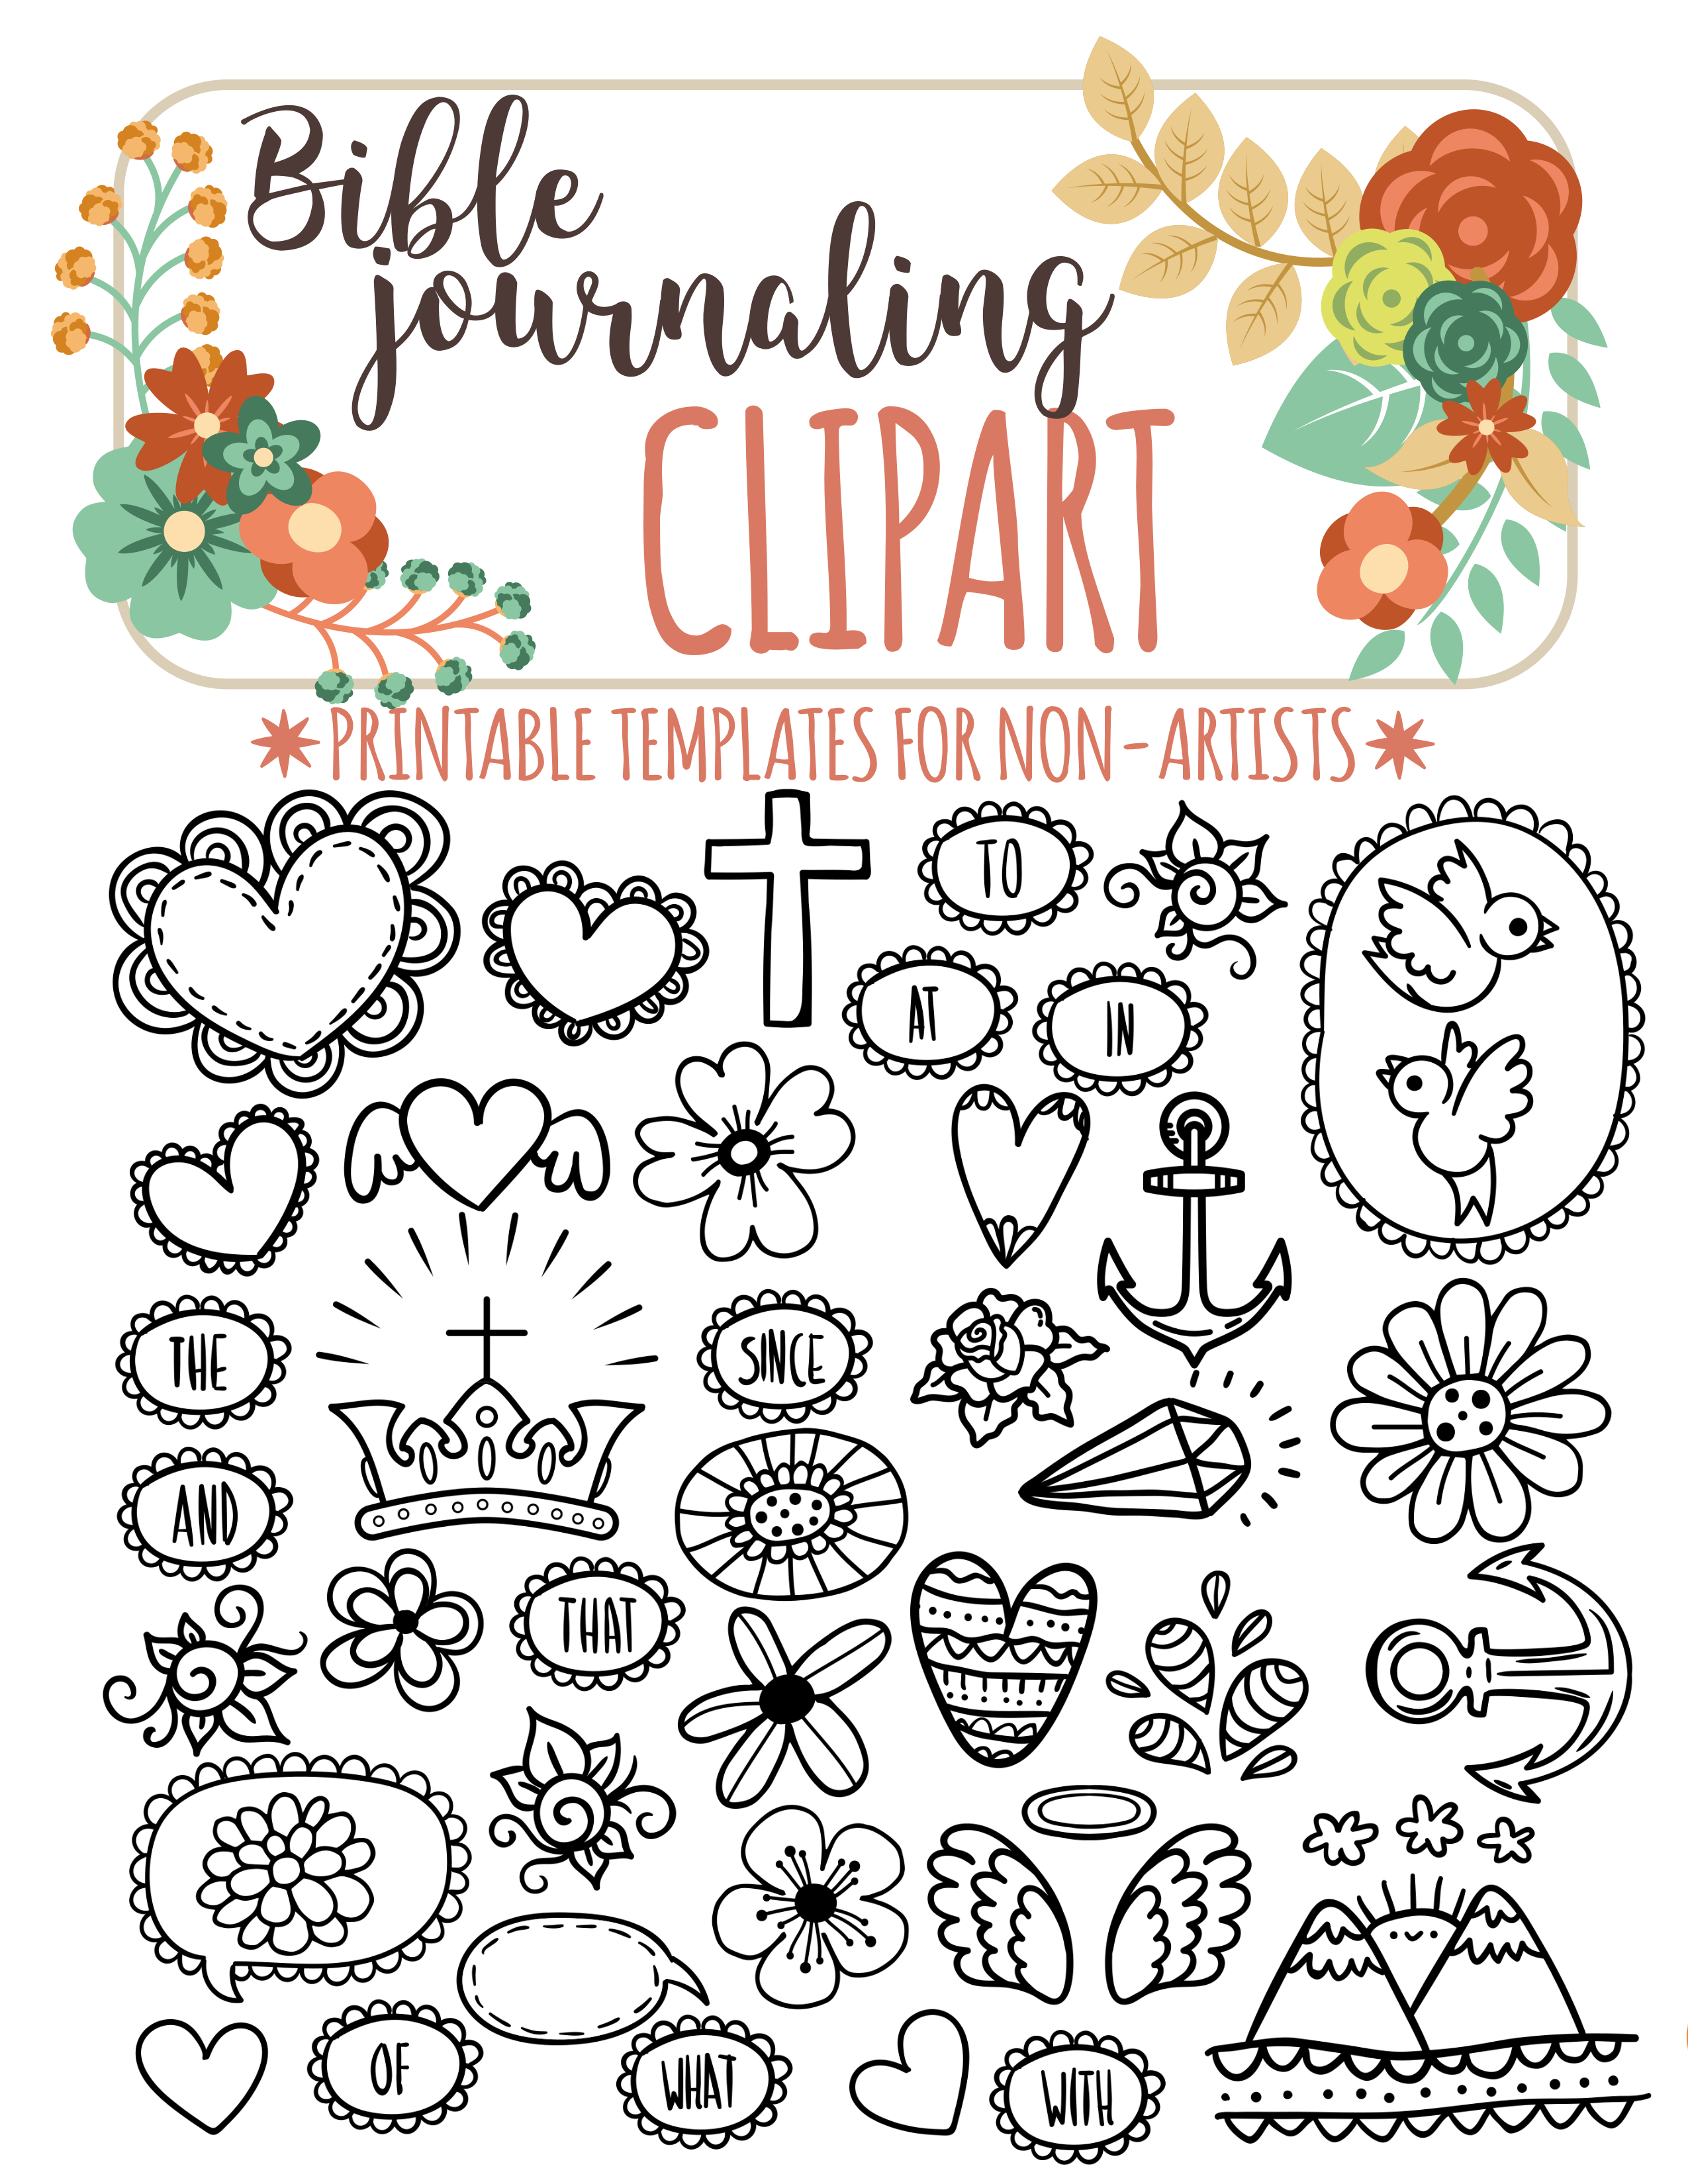 Pin On Cliparts For Bible Journaling